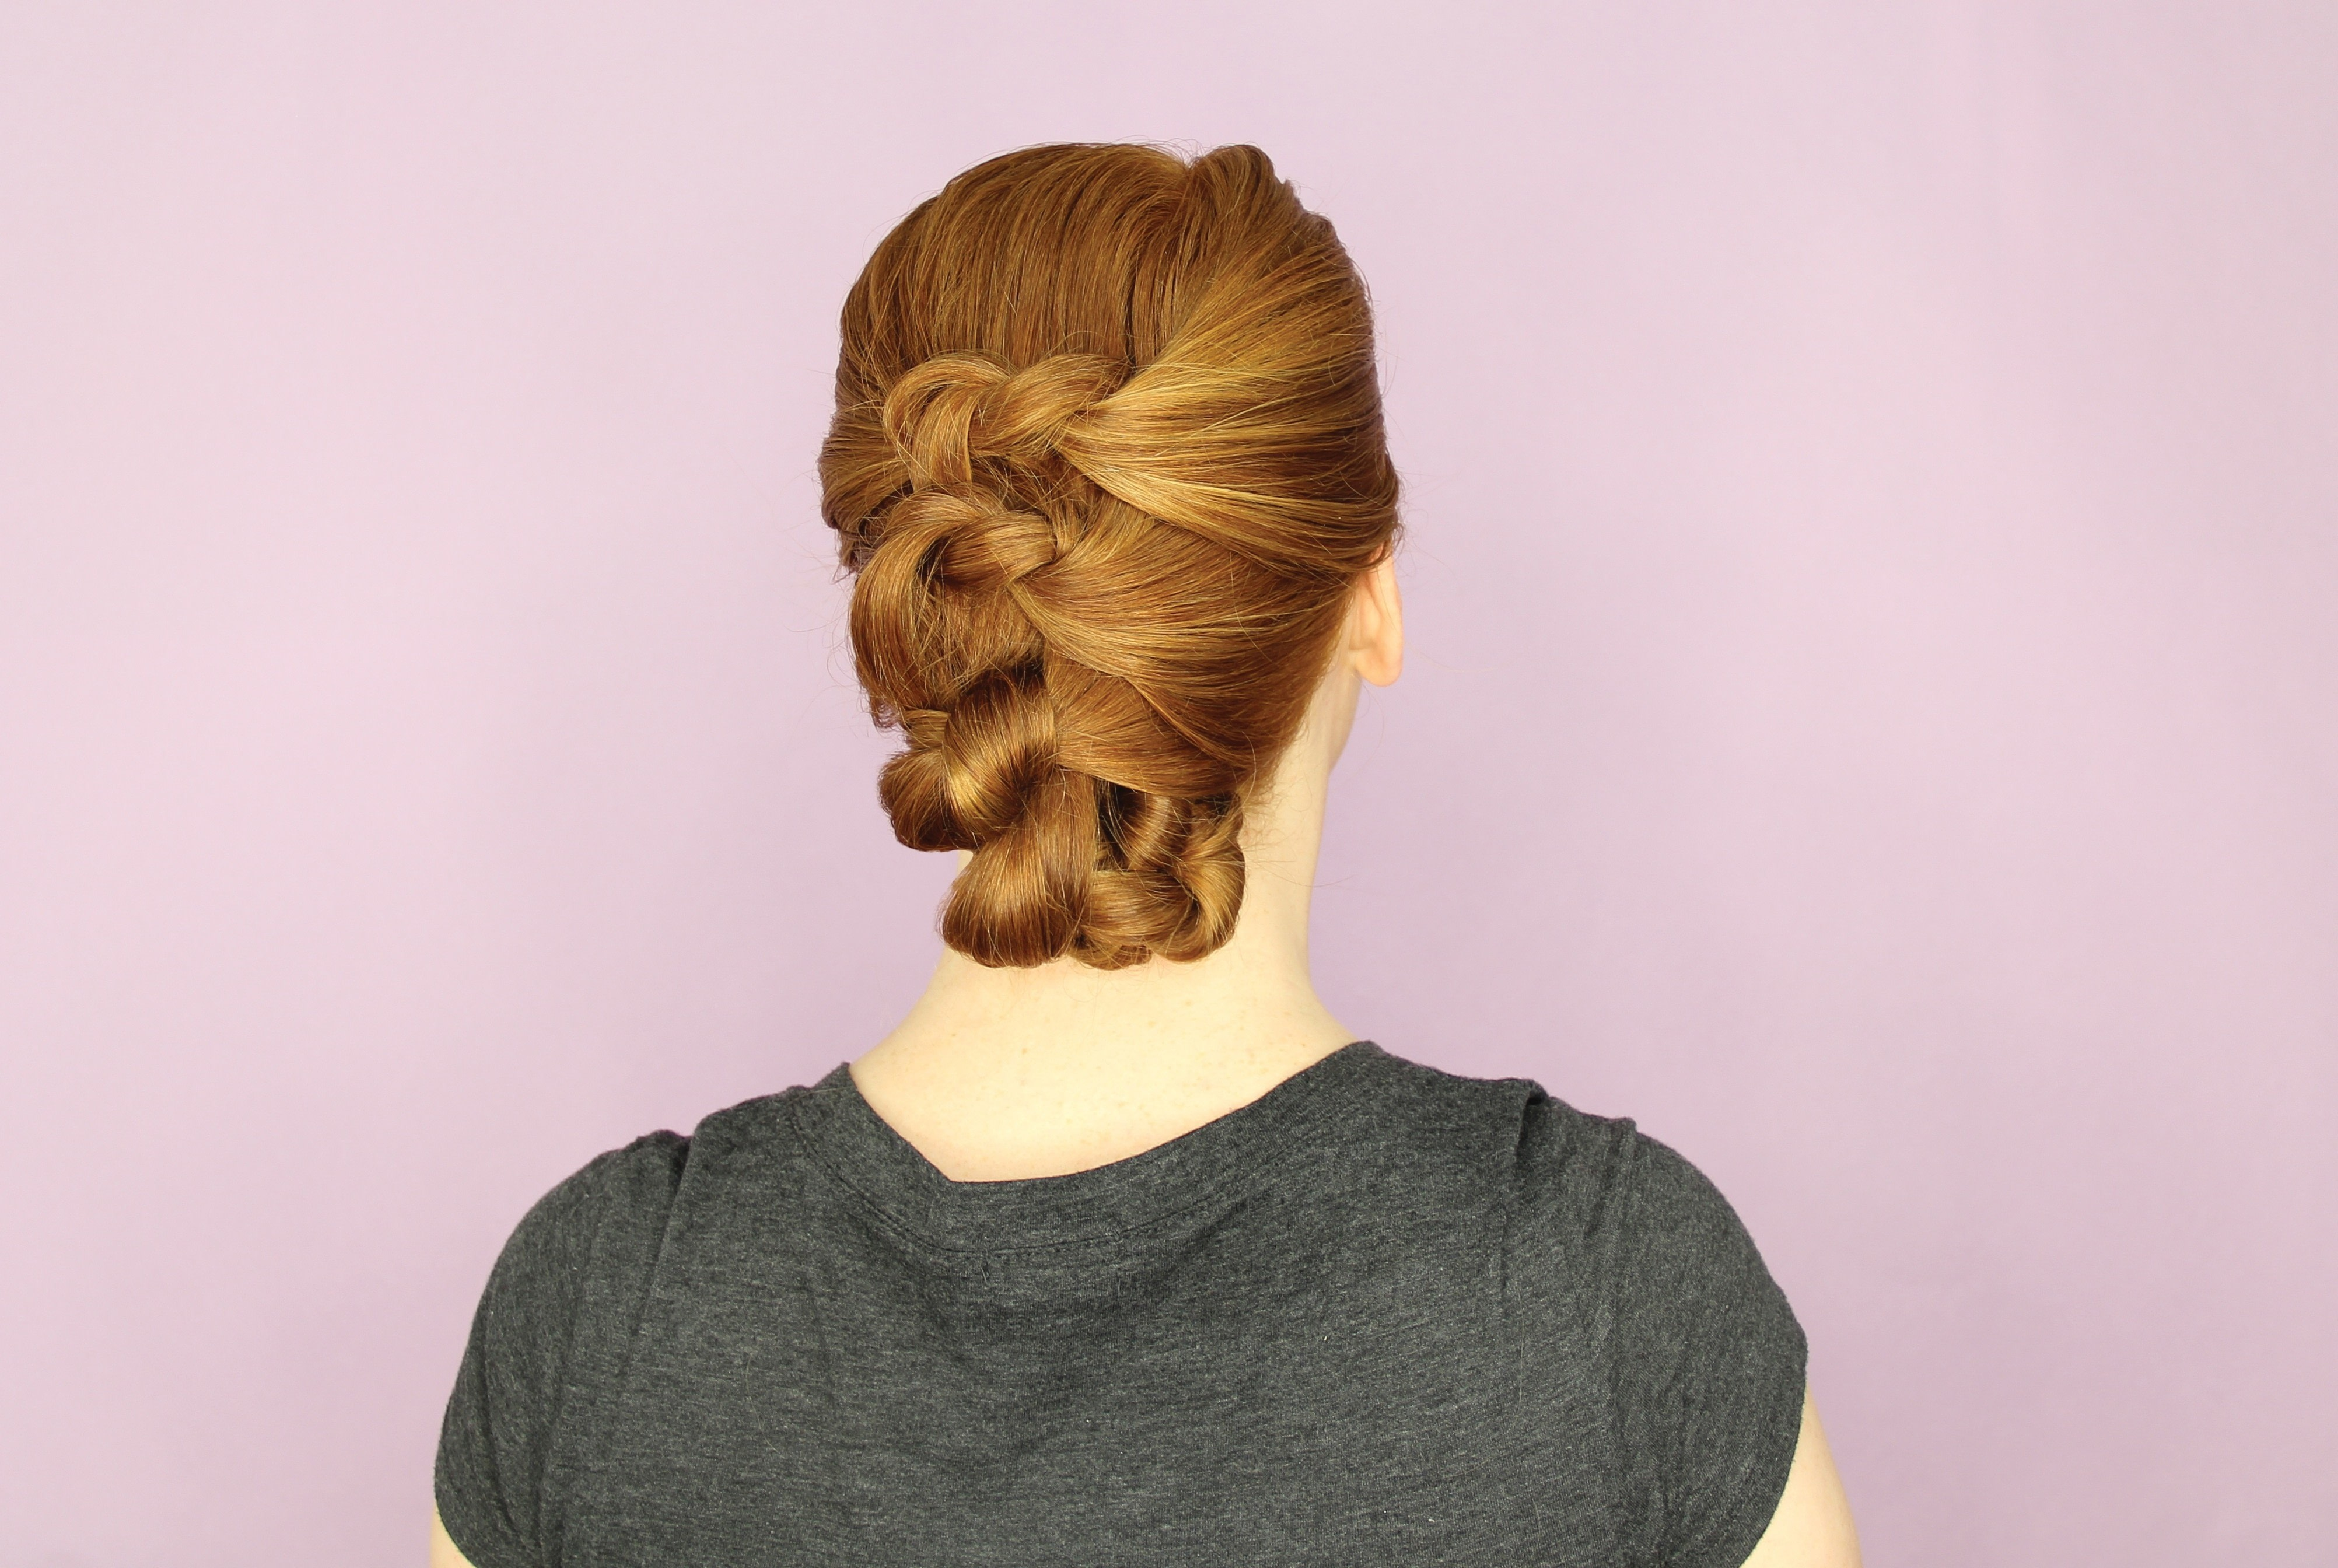 Knotted Updo · Extract From DIY Updos, Knots, And Twists